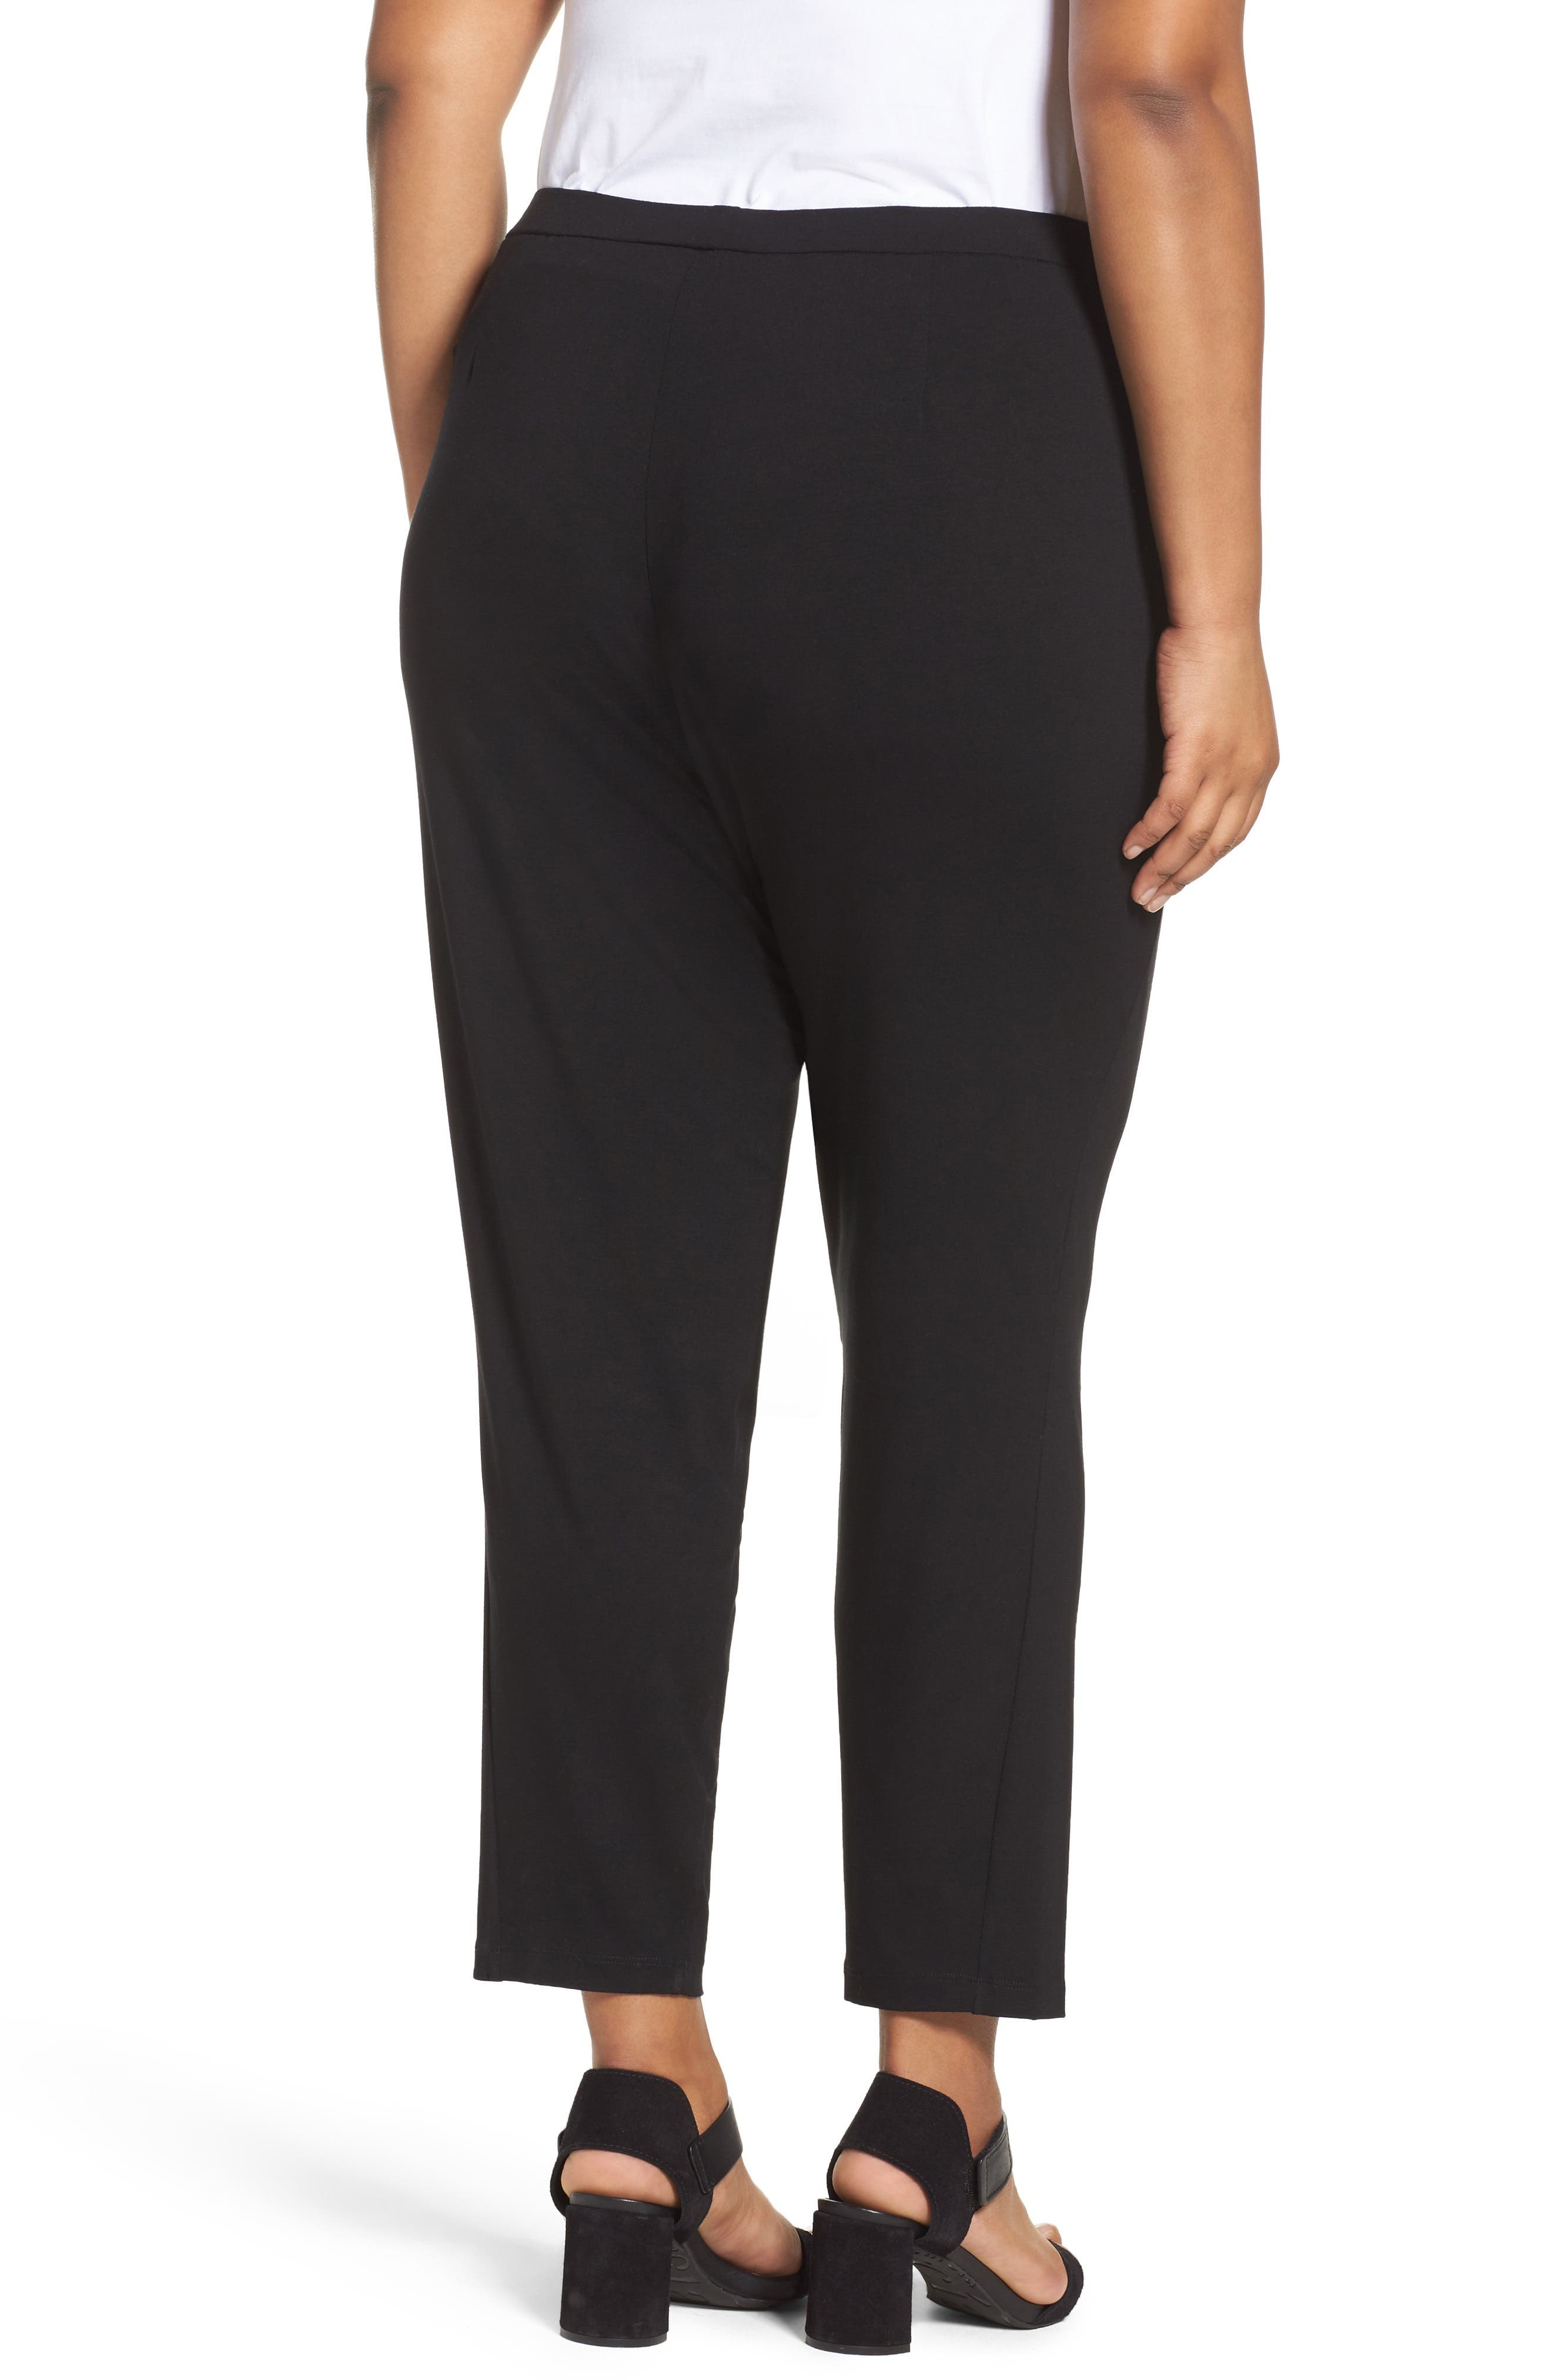 EILEEN FISHER, Crop Stretch Knit Pants, Alternate thumbnail 2, color, BLACK